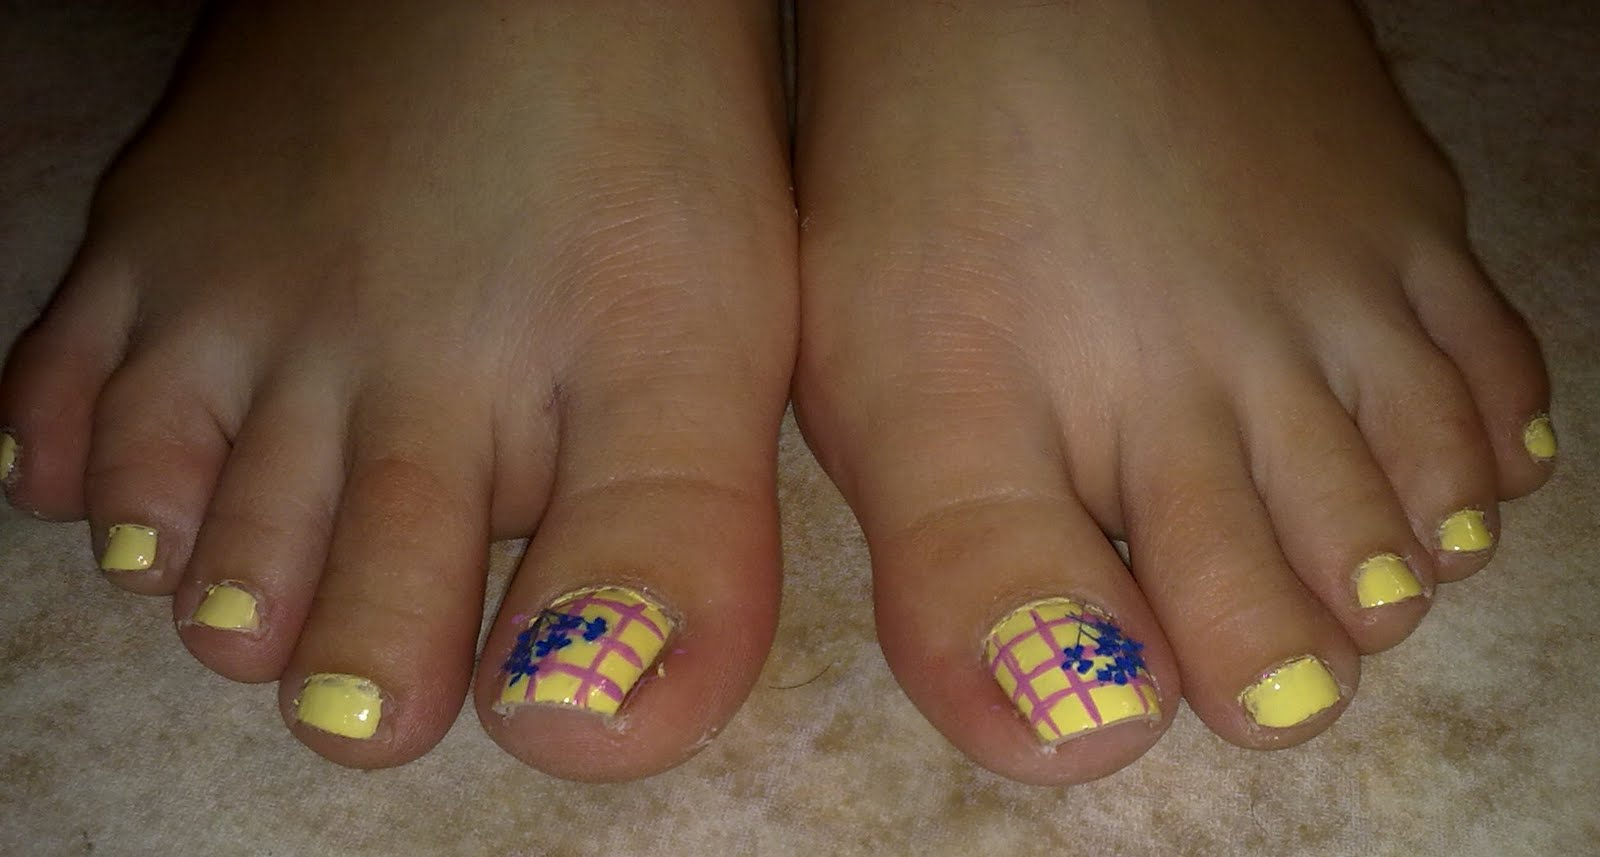 Toe Nail Art of the Week: Colour-Blocking with Dried Flowers - Every ...